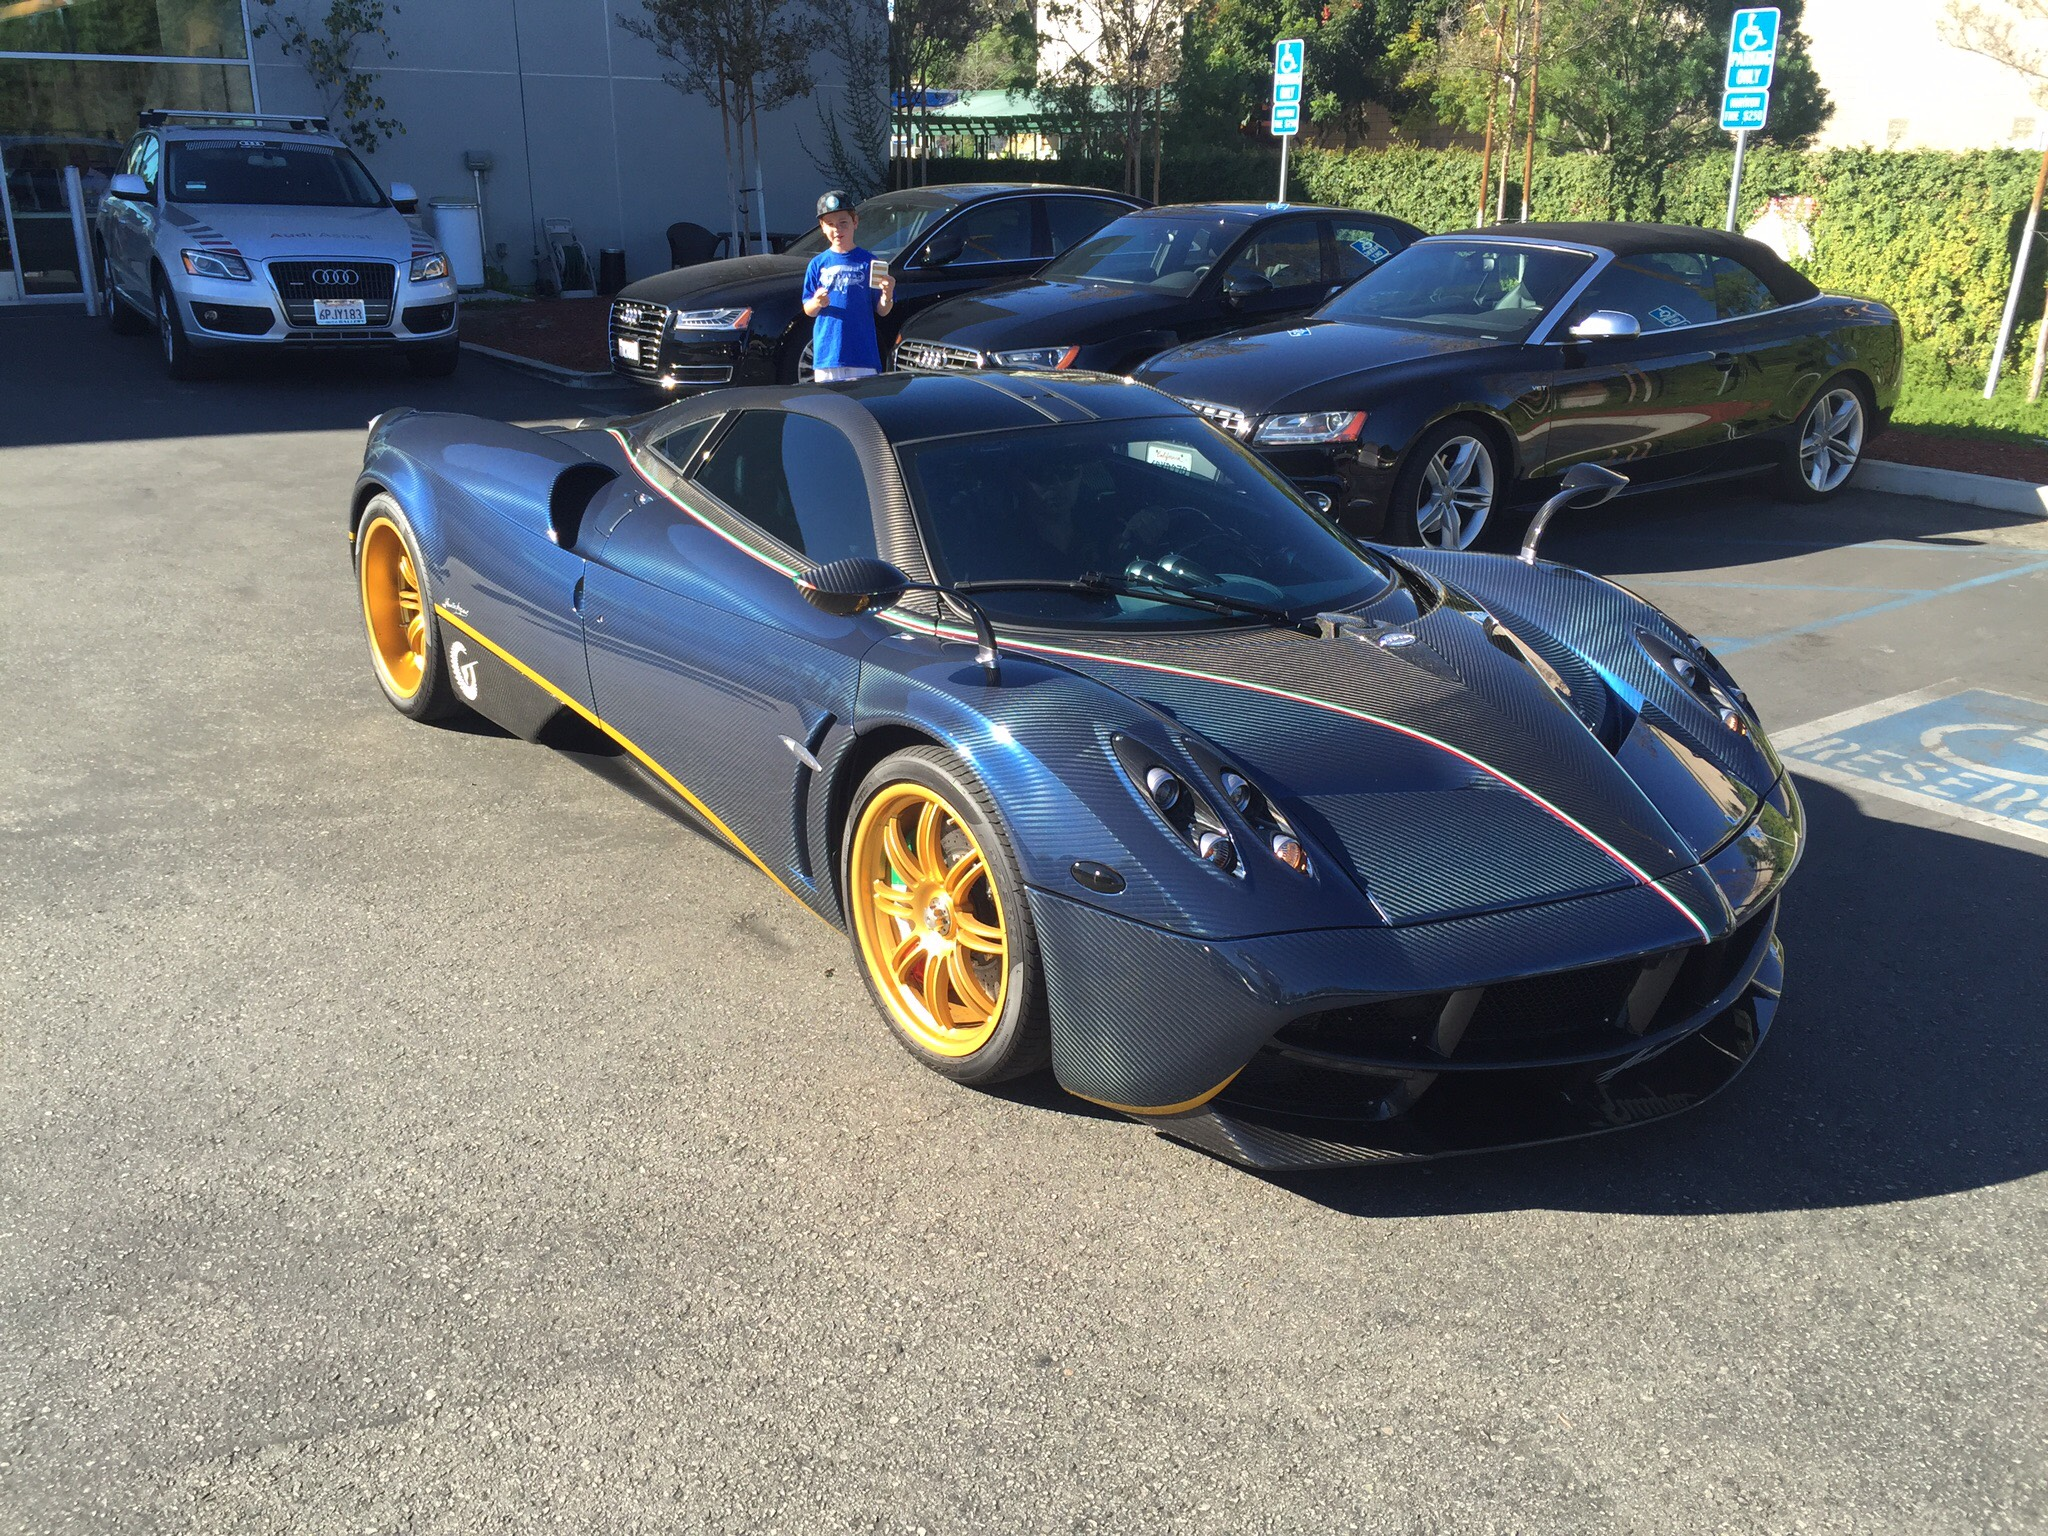 Pagani Huayra full carbon fiber Is one sick ride